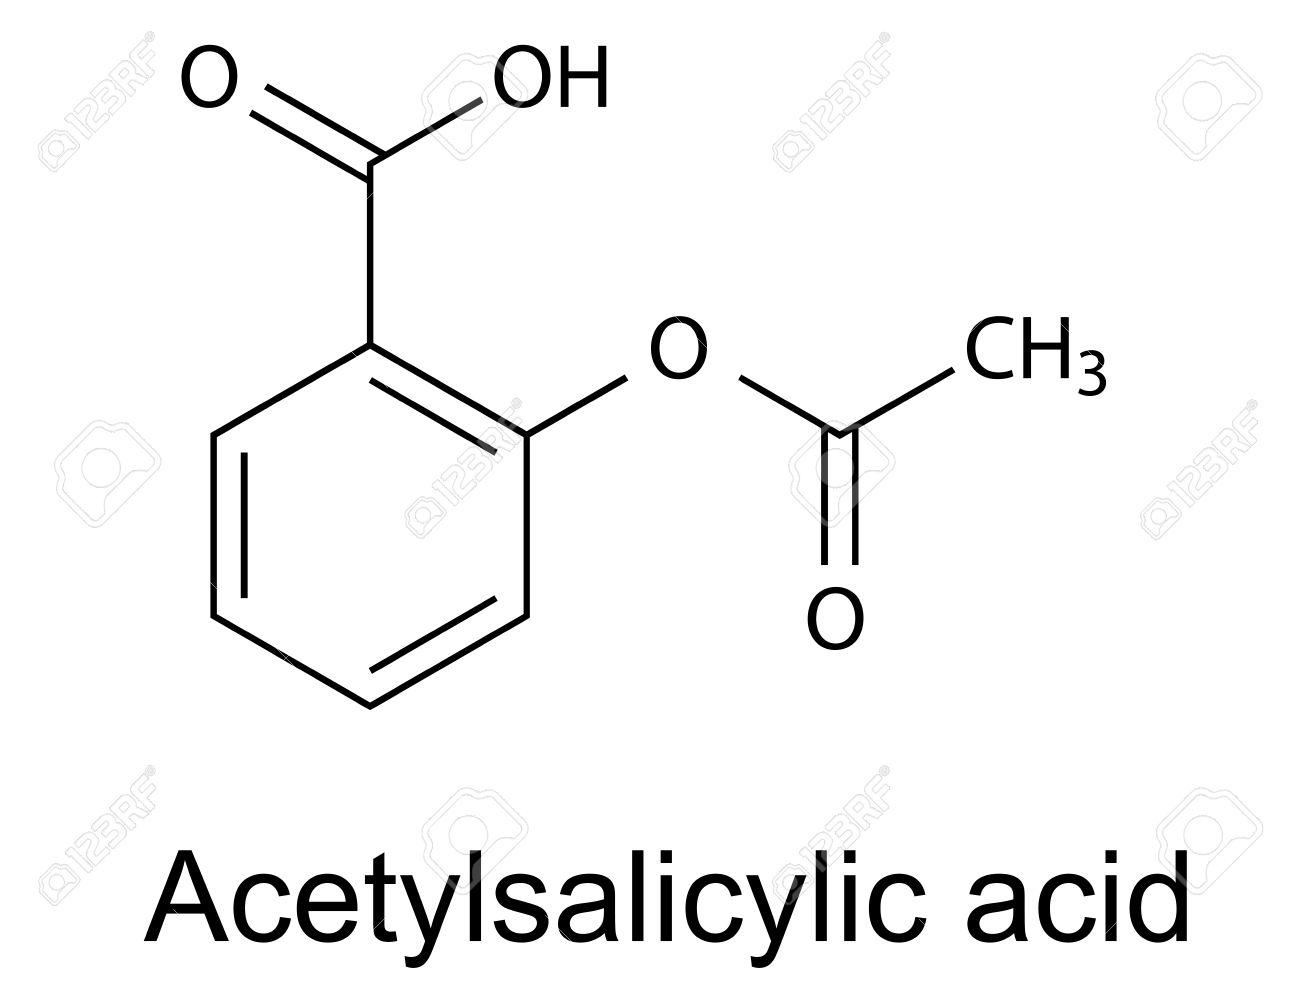 Structural chemical formula of acetylsalicylic acid aspirin , vector, 2d illustration, isolated on white background - 27535459